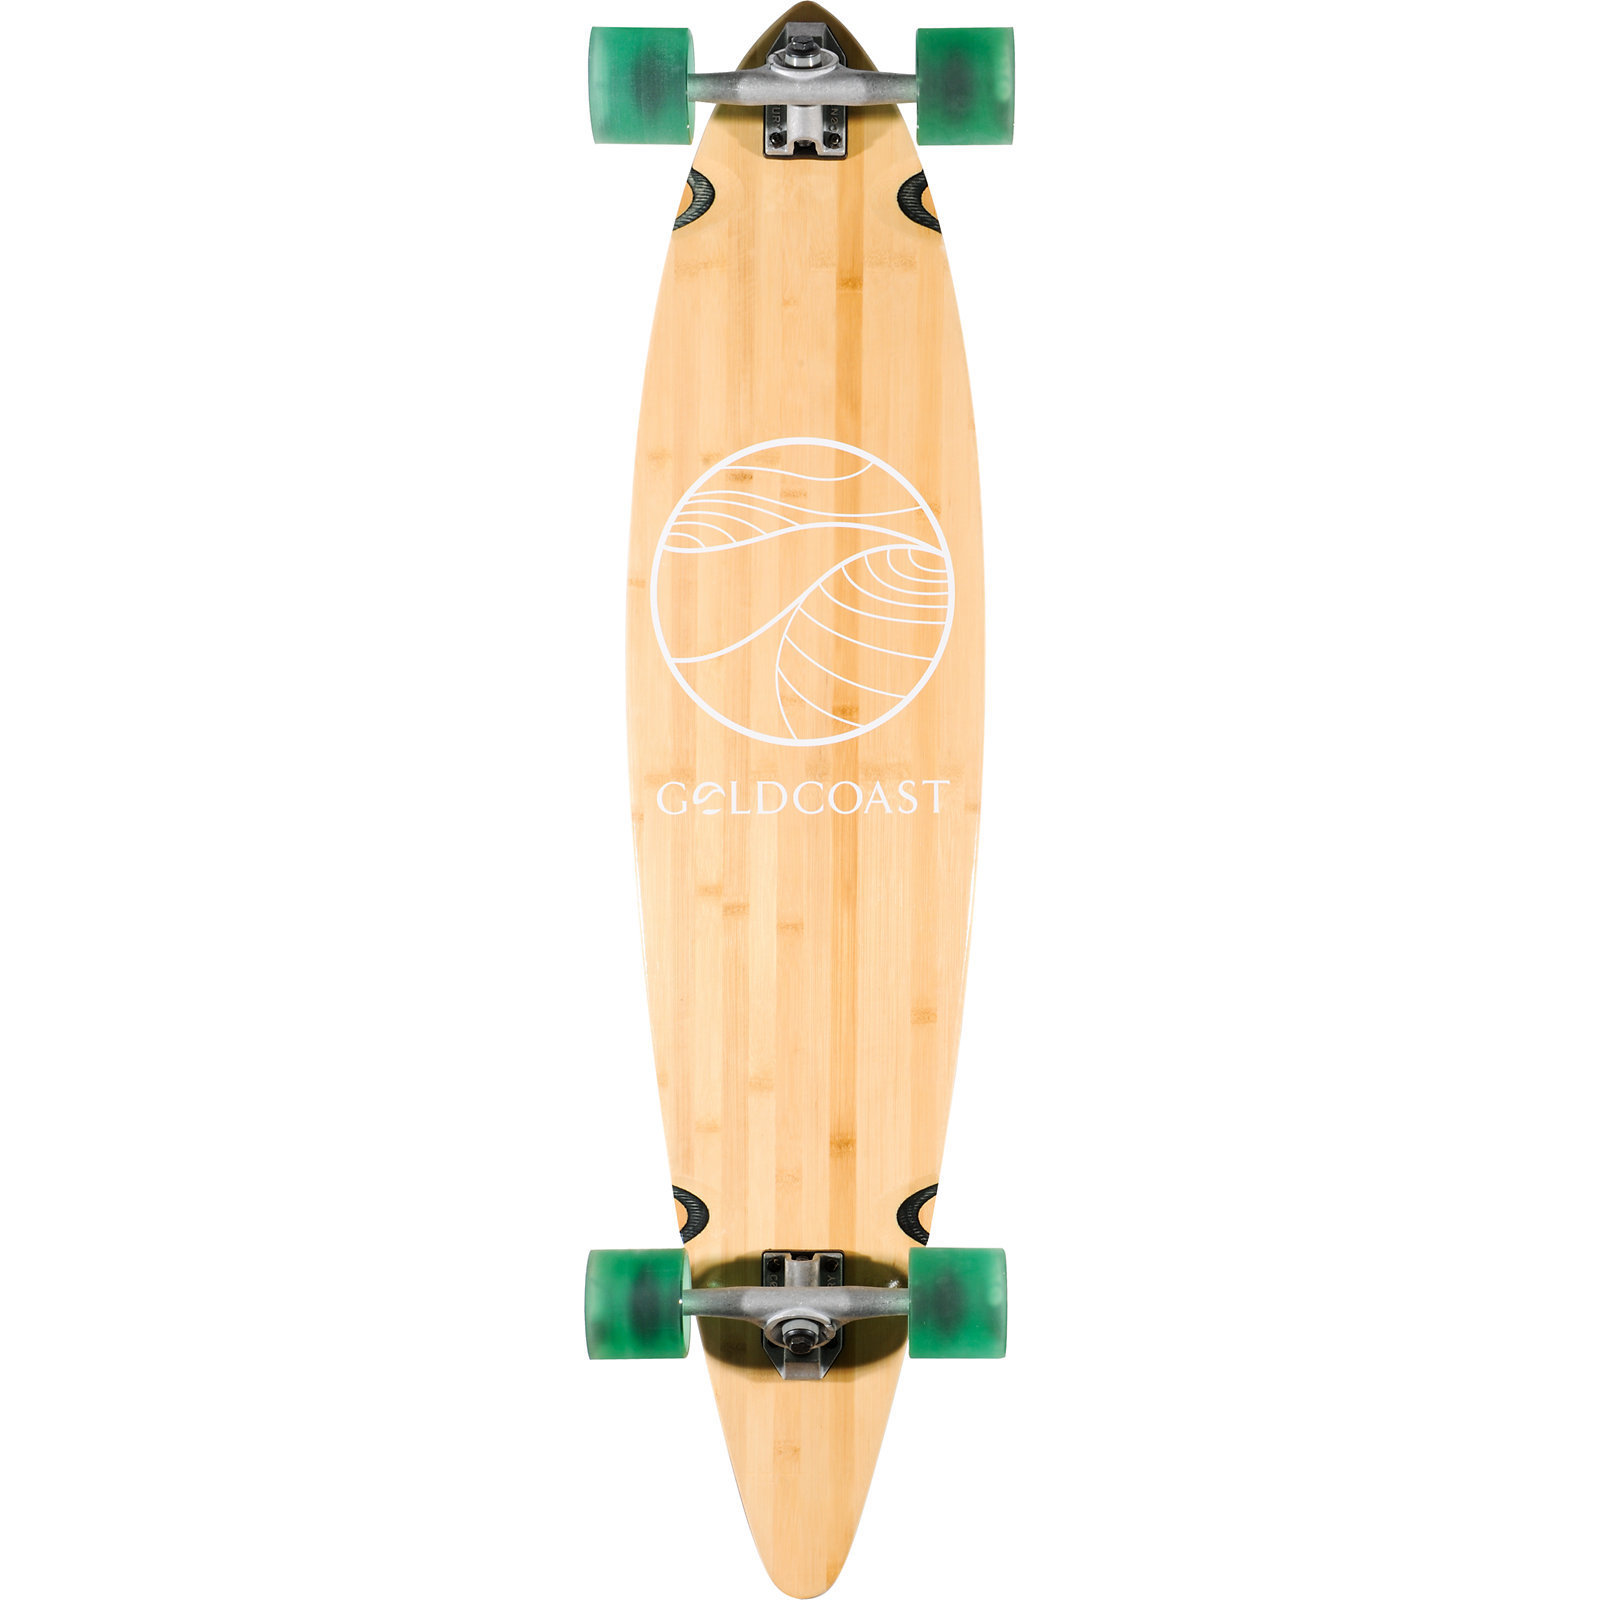 Cheap Complete Pintail Longboards: tvsd.com.br/publicidade_bkp/cheap-complete-pintail-longboards